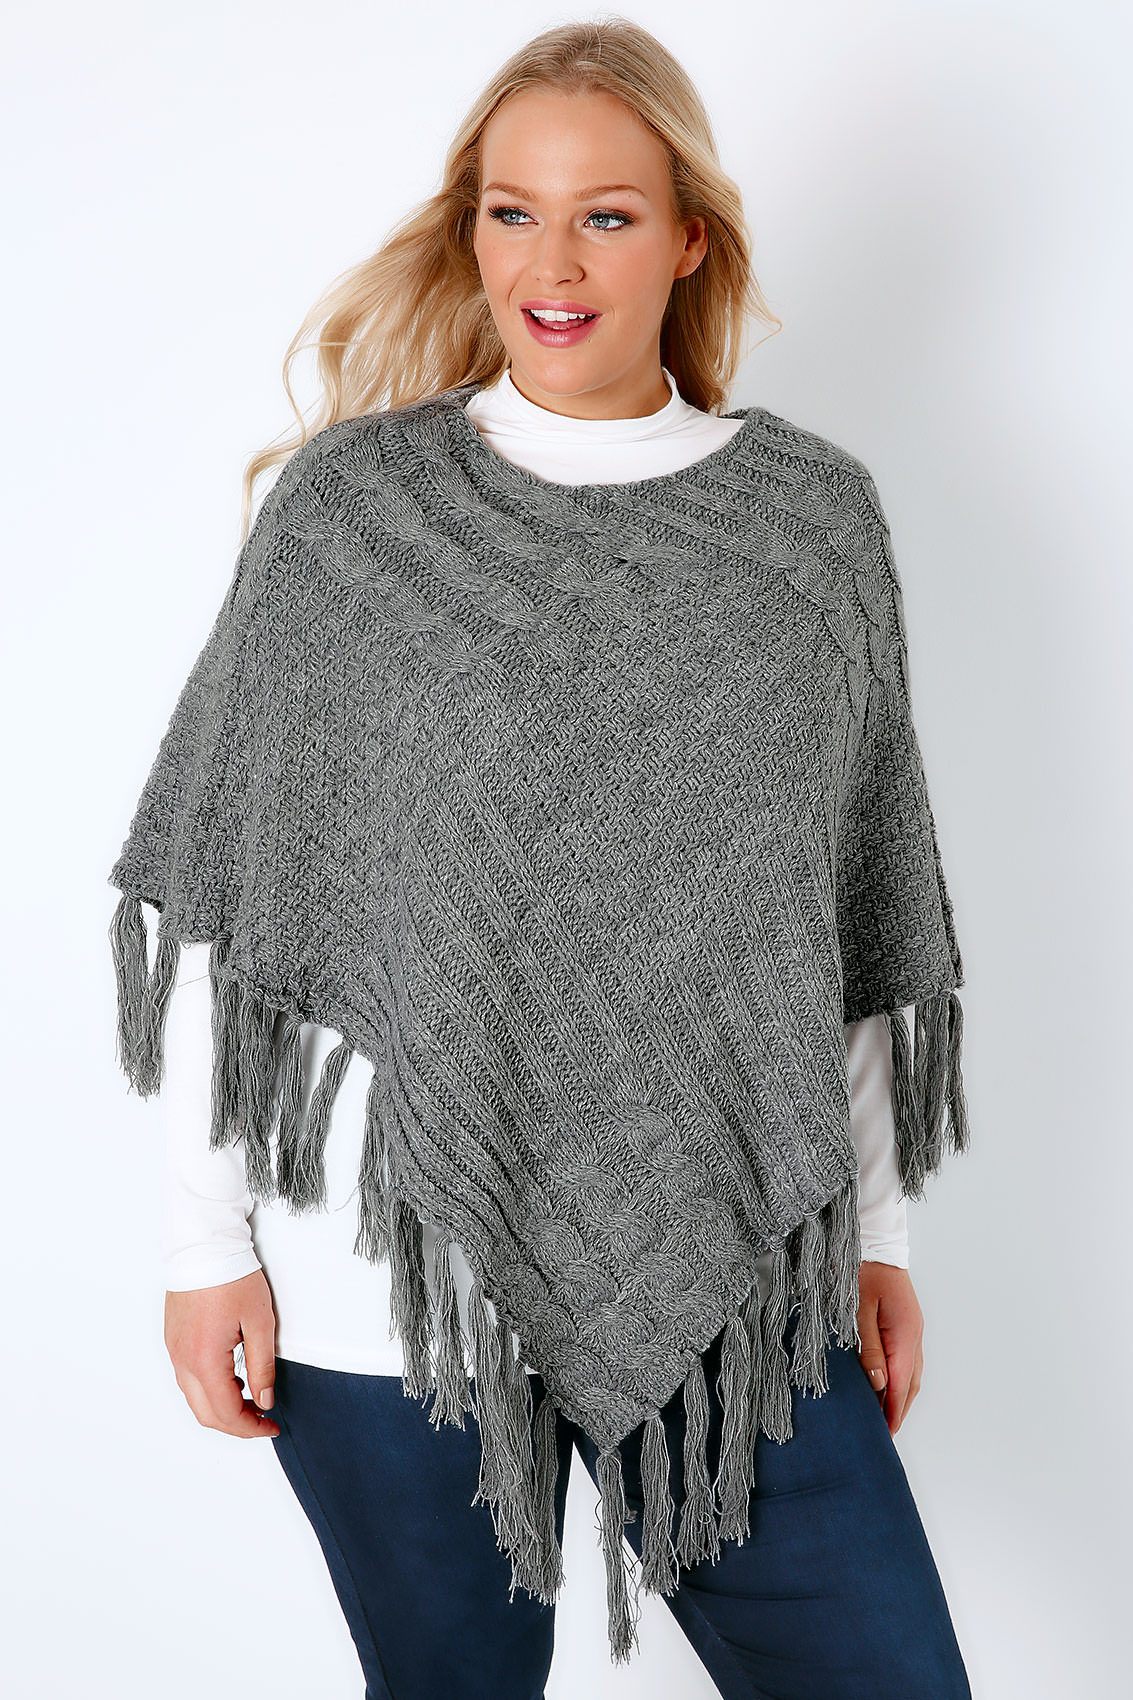 Knitted Poncho Unique Grey Cable Knitted Poncho with Tassels Plus Size 16 to 32 Of Amazing 49 Photos Knitted Poncho